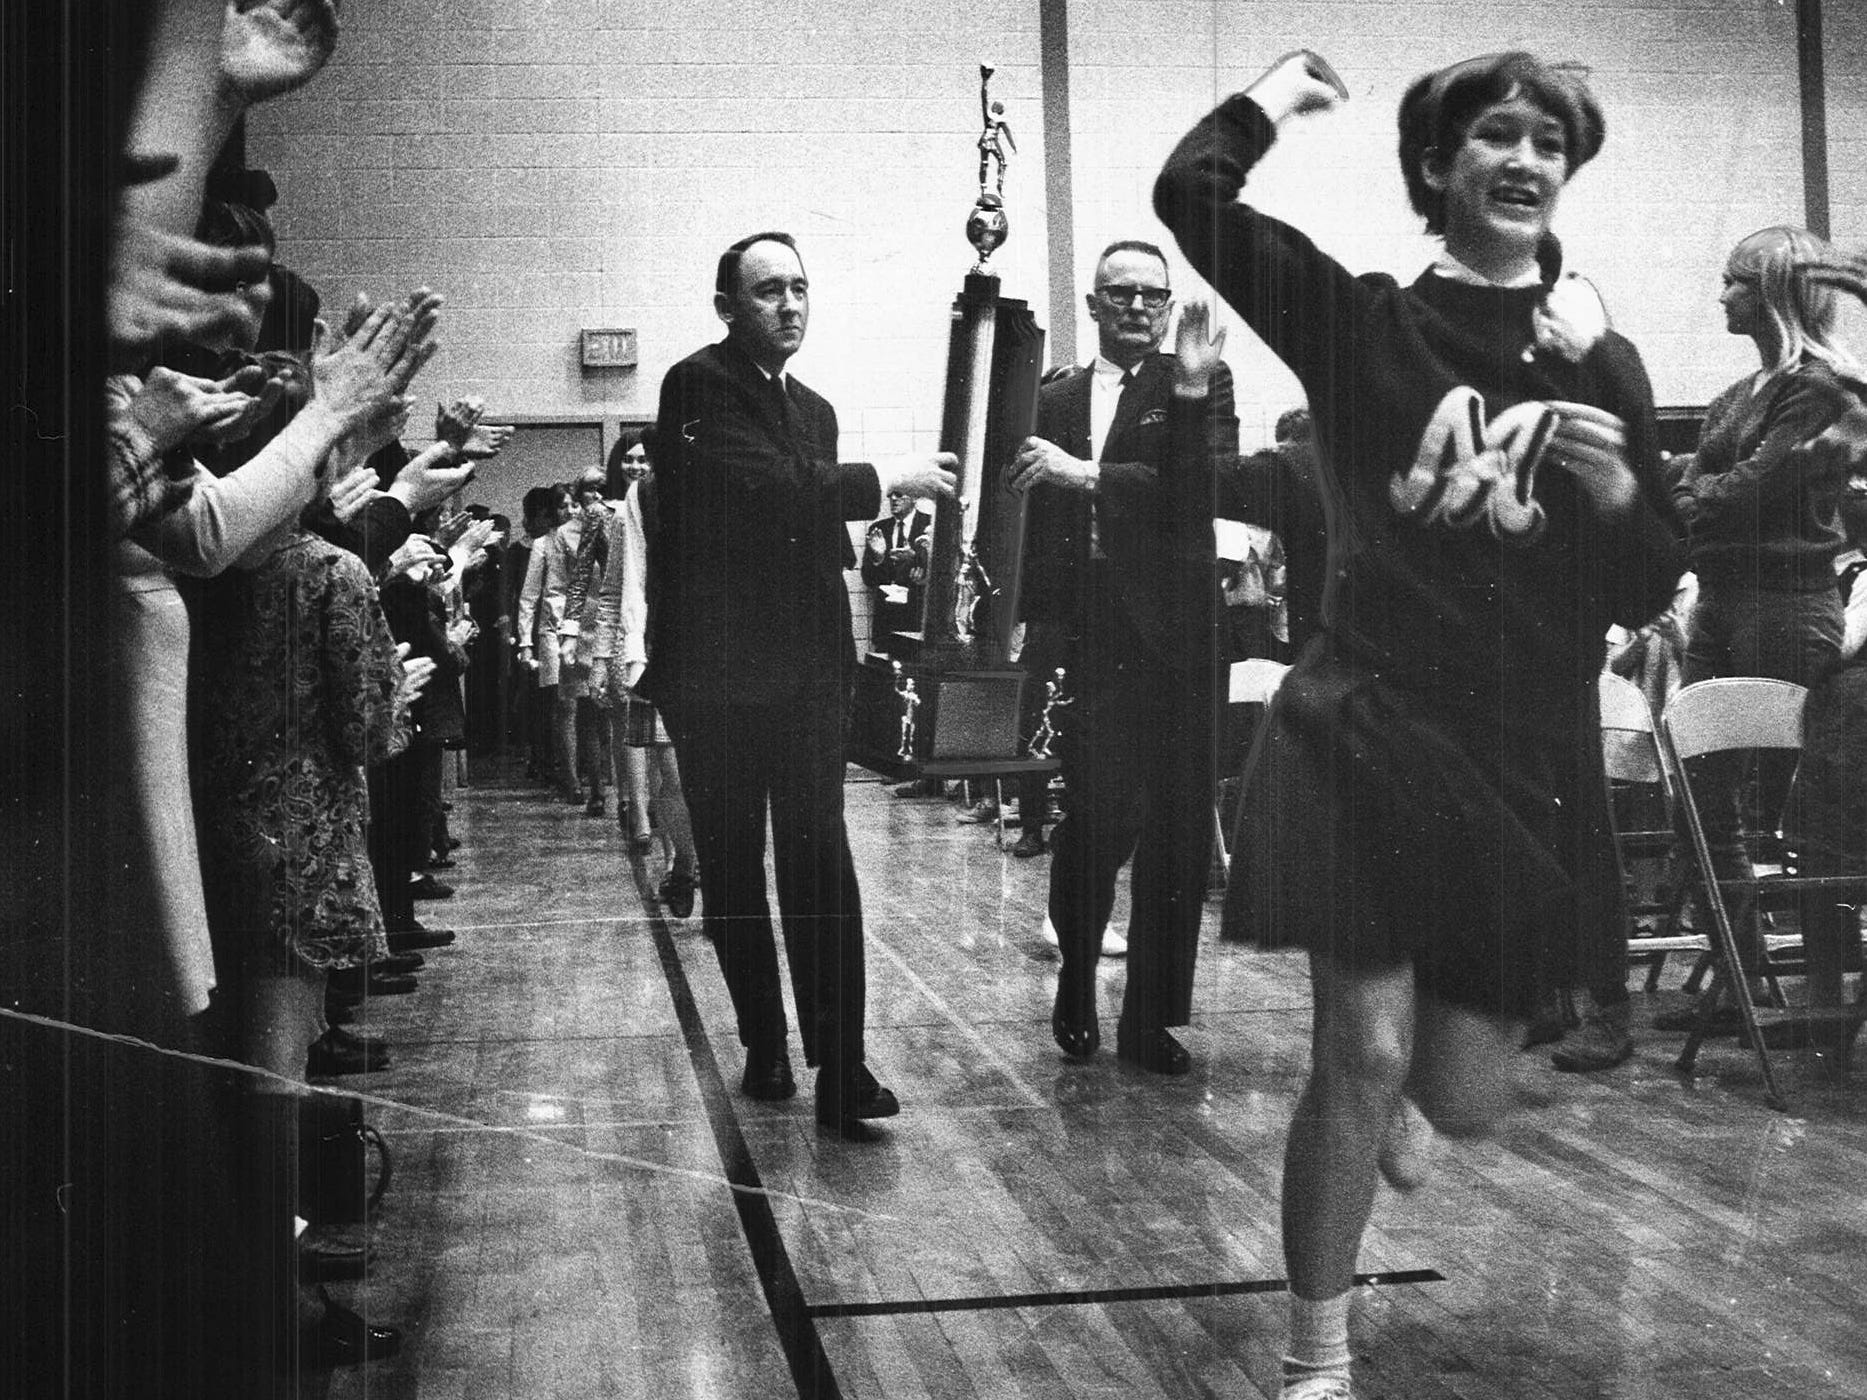 Close to 2,500 fans packed the Montezuma High School gymnasium in March 1969 to celebrate the school's first state girls' basketball tournament championship. The Saturday night title game that saw Montezuma beat Allison-Bristow 66-60 was followed by a caravan that picked up hundreds of cars on its way from Des Moines to Poweshiek County.